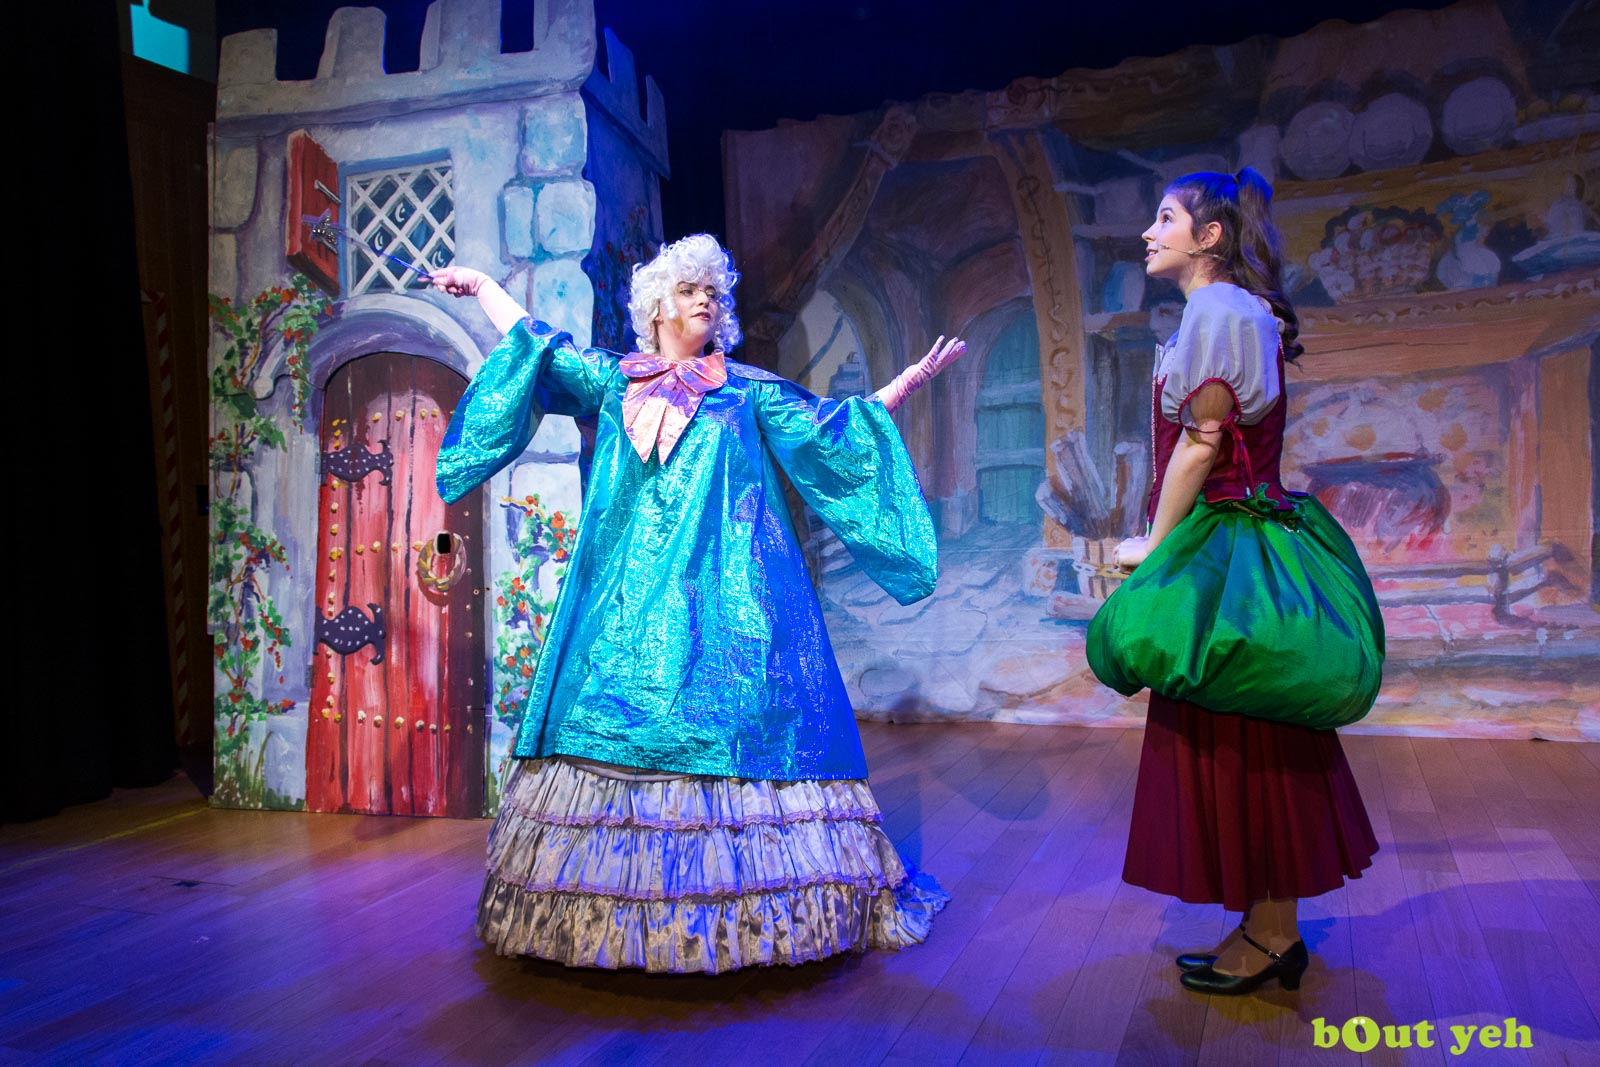 PR photographers Belfast portfolio photo 9934 of Cinderella pantomime at the Old Courthouse Theatre Antrim - Bout Yeh photography and video production services Belfast, Northern Ireland